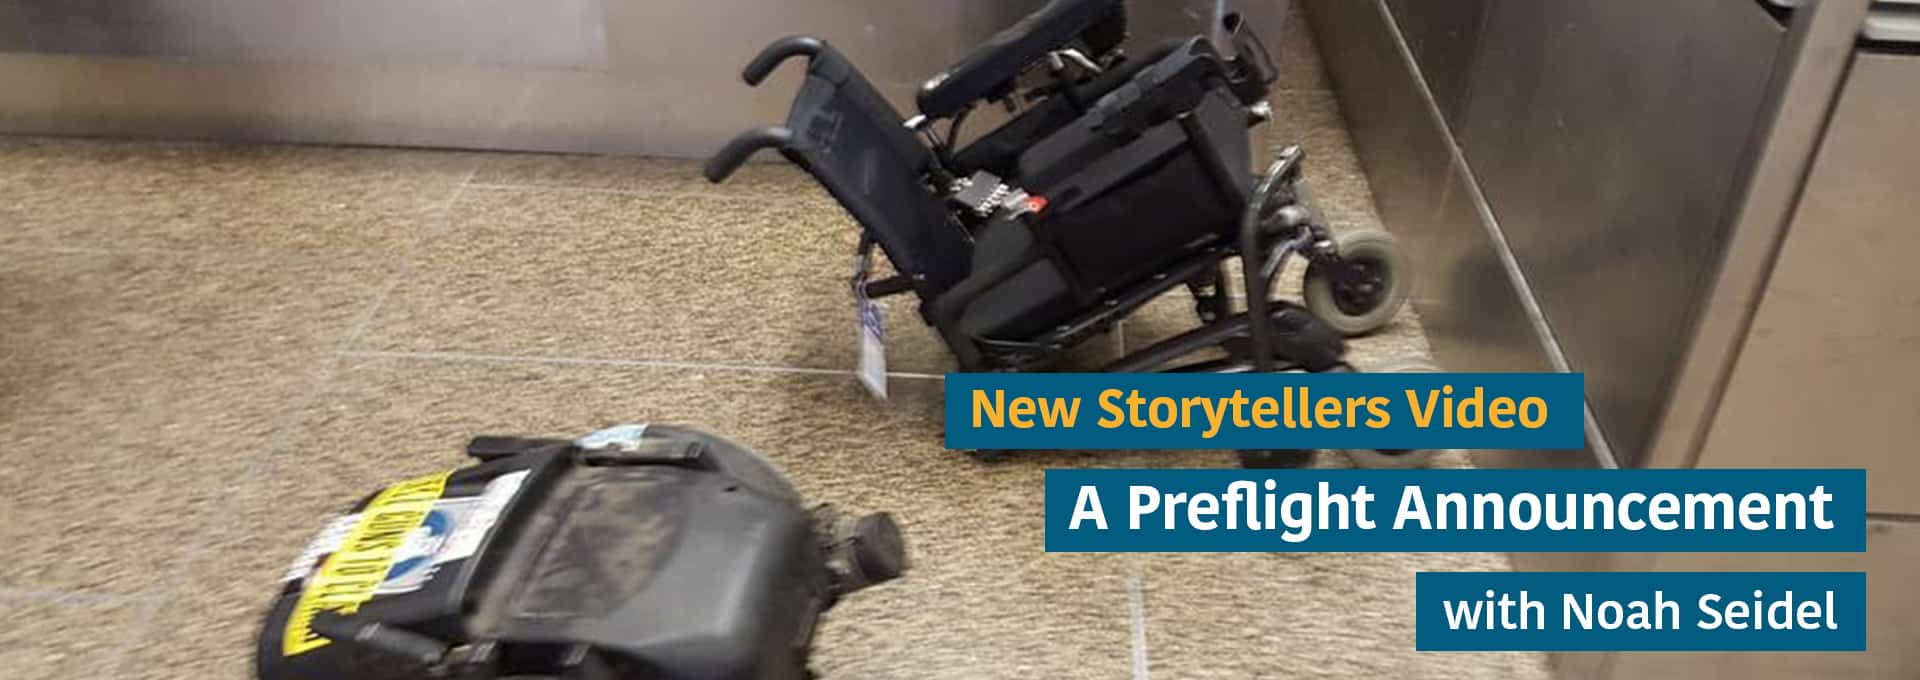 Noah's broken wheelchair at the airport with the text: New Storytellers Video: A Preflight Announcement with Noah Seidel.